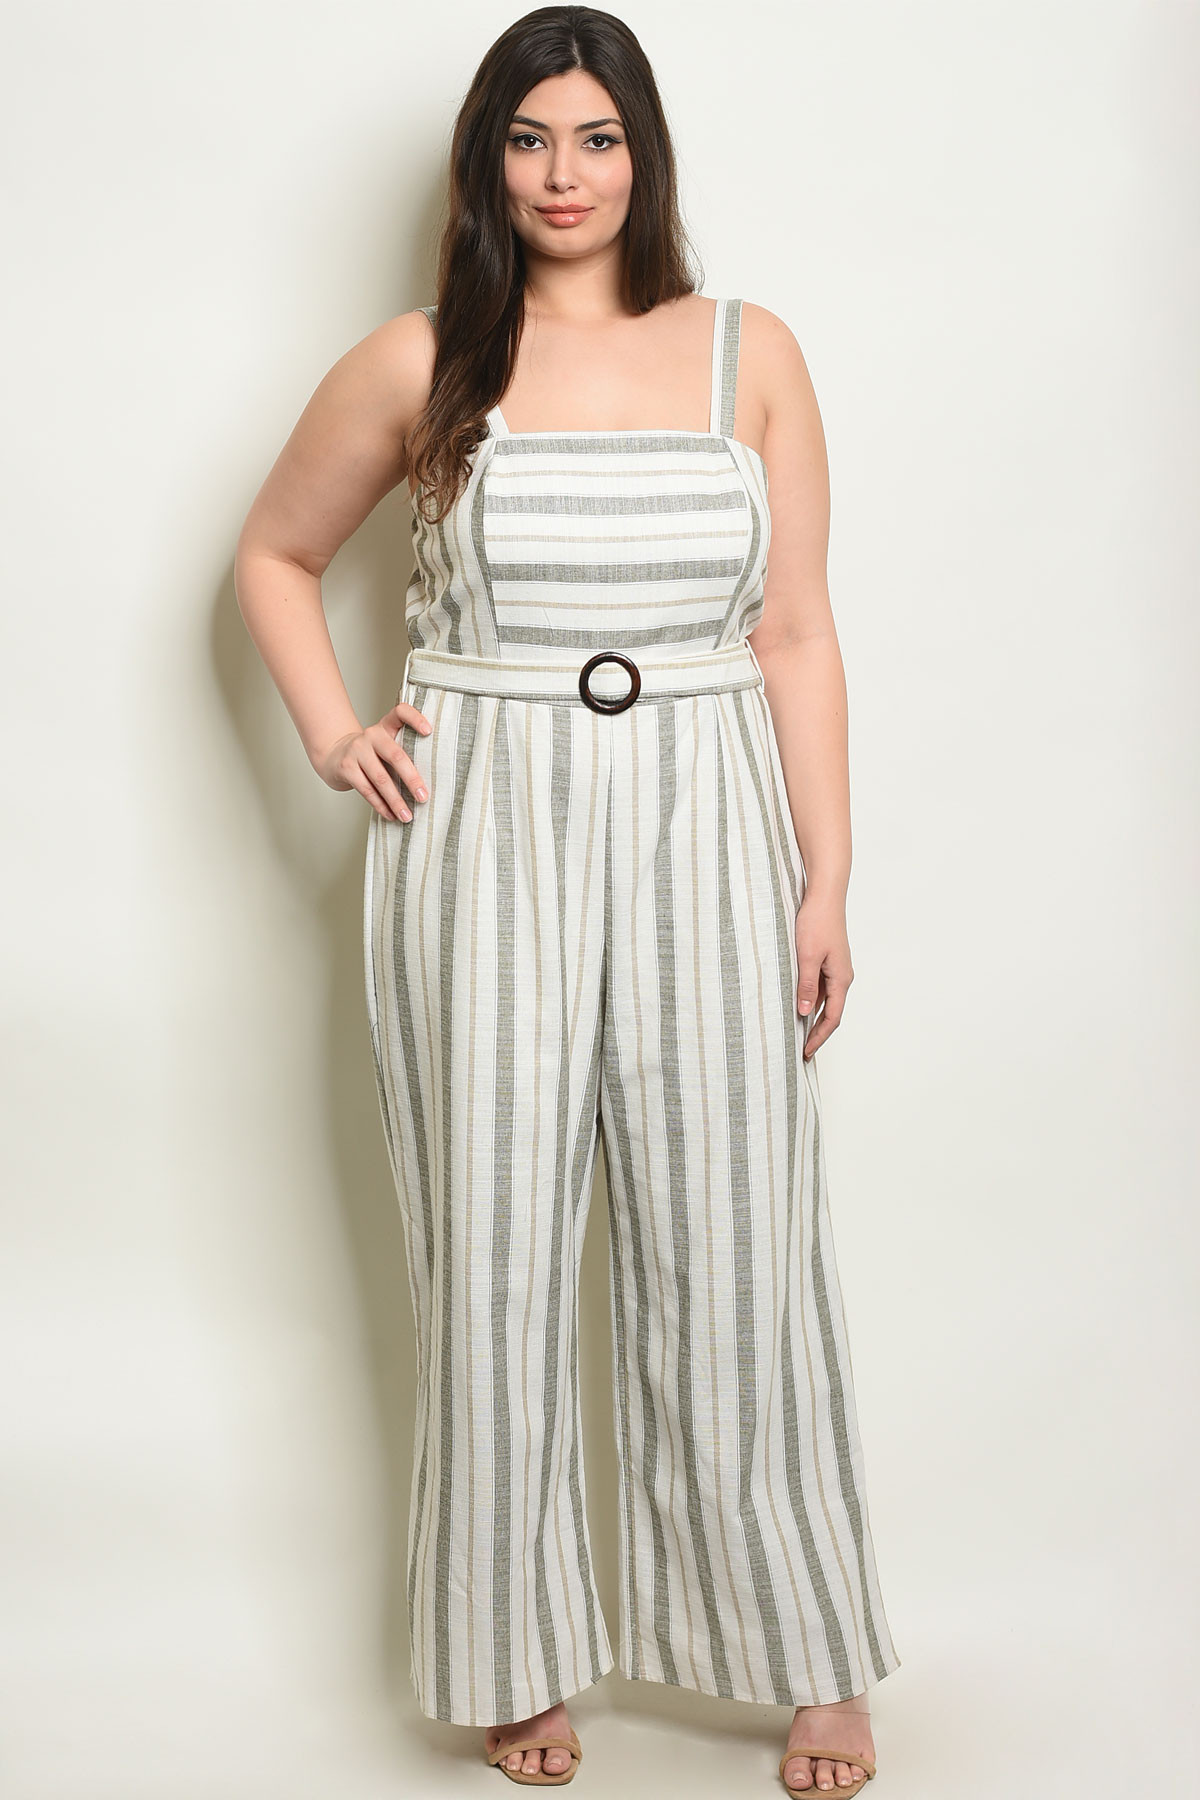 69805bf0e0e S21-1-1-J56057X IVORY OLIVE STRIPES PLUS SIZE JUMPSUIT 2-2-2-1